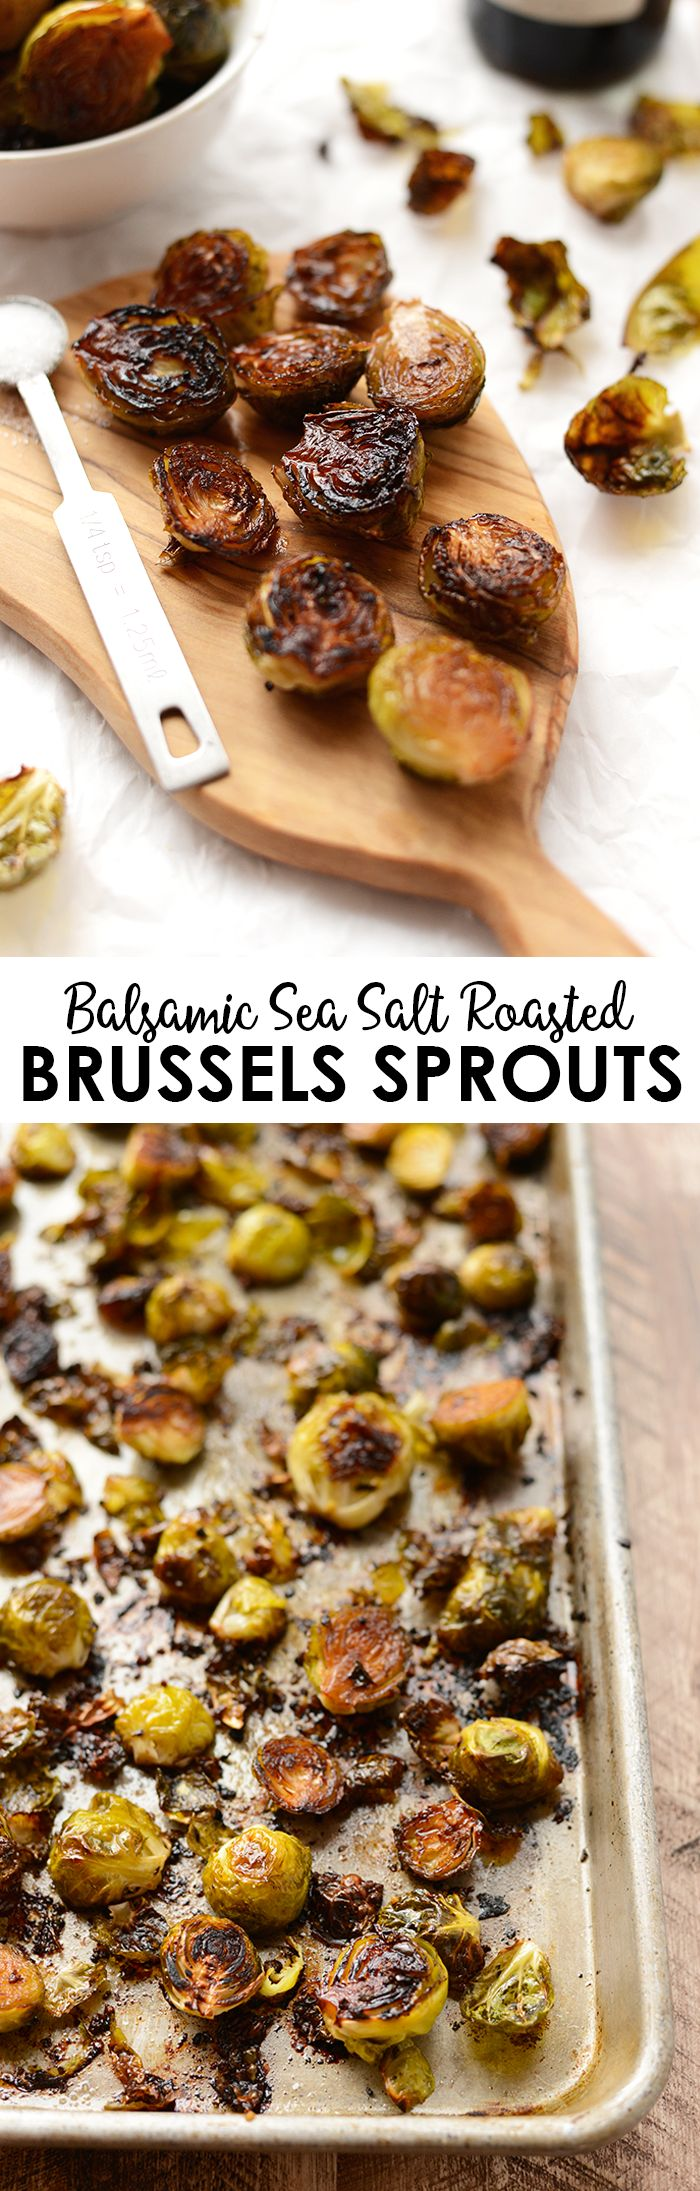 Make these Balsamic Sea Salt Roasted Brussels Sprouts this holiday season for the most delicious vegan and paleo side that everyone will gobble up!